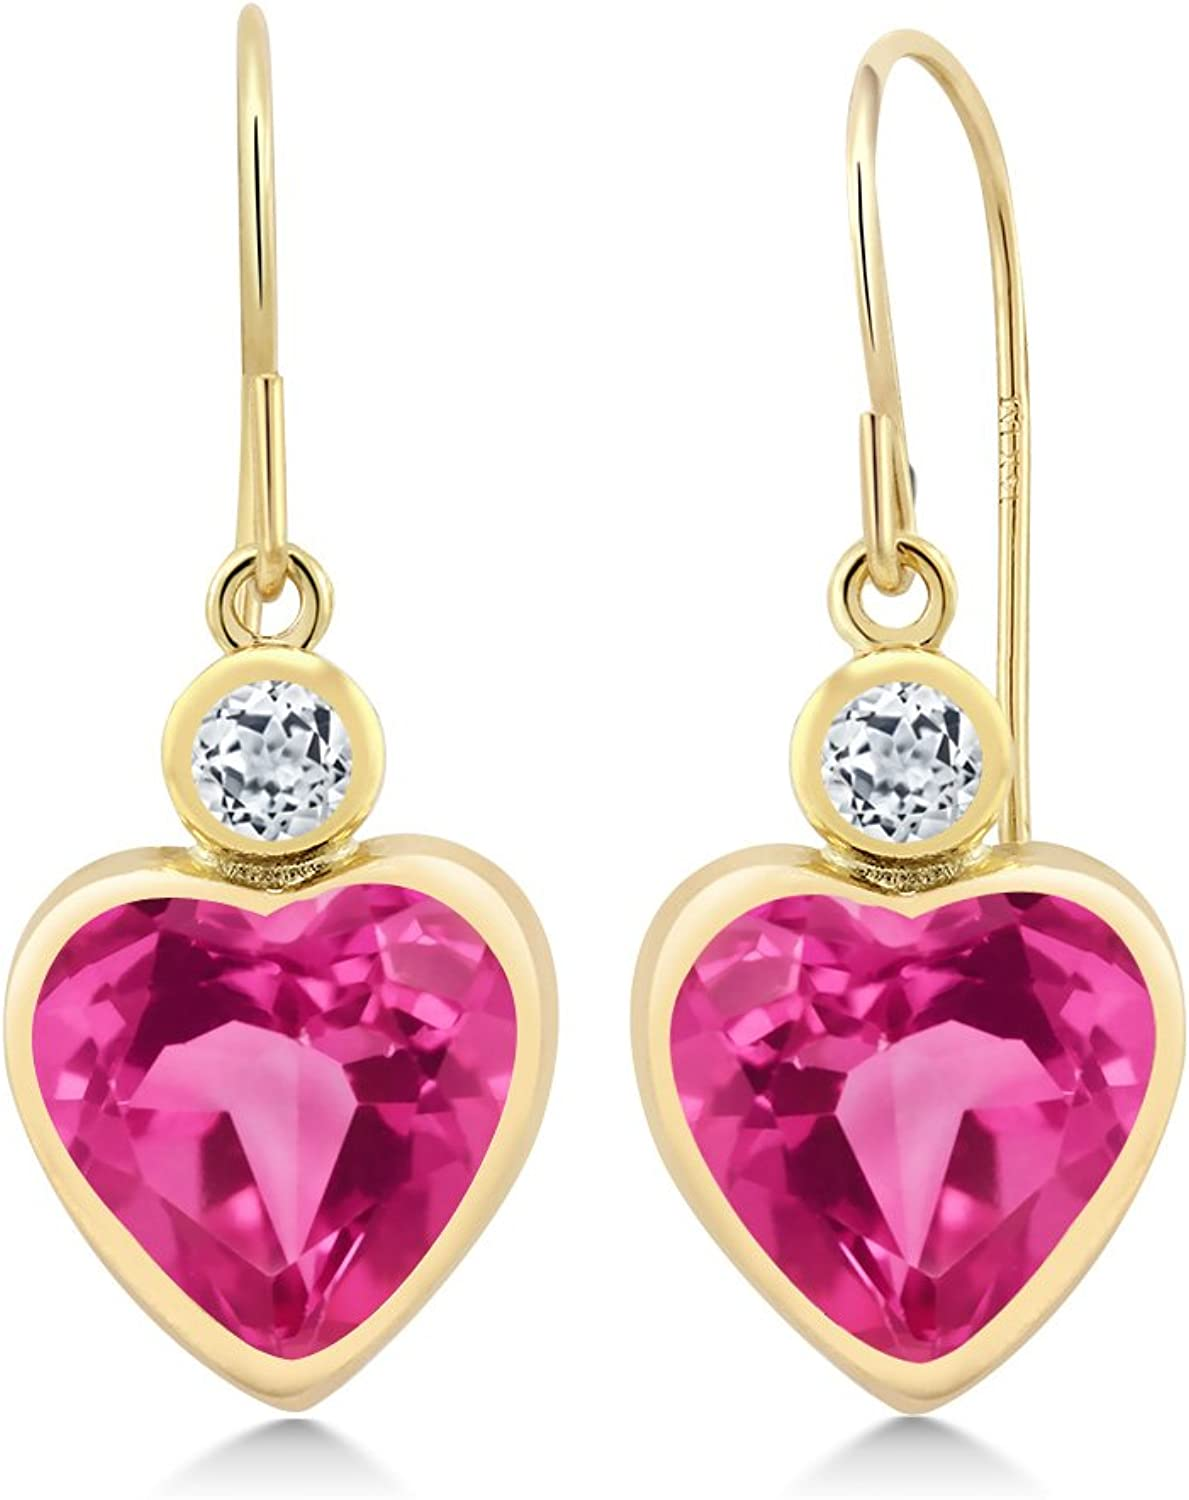 5.14 Ct Heart Shape Pink Created Sapphire White Topaz 14K Yellow gold Earrings